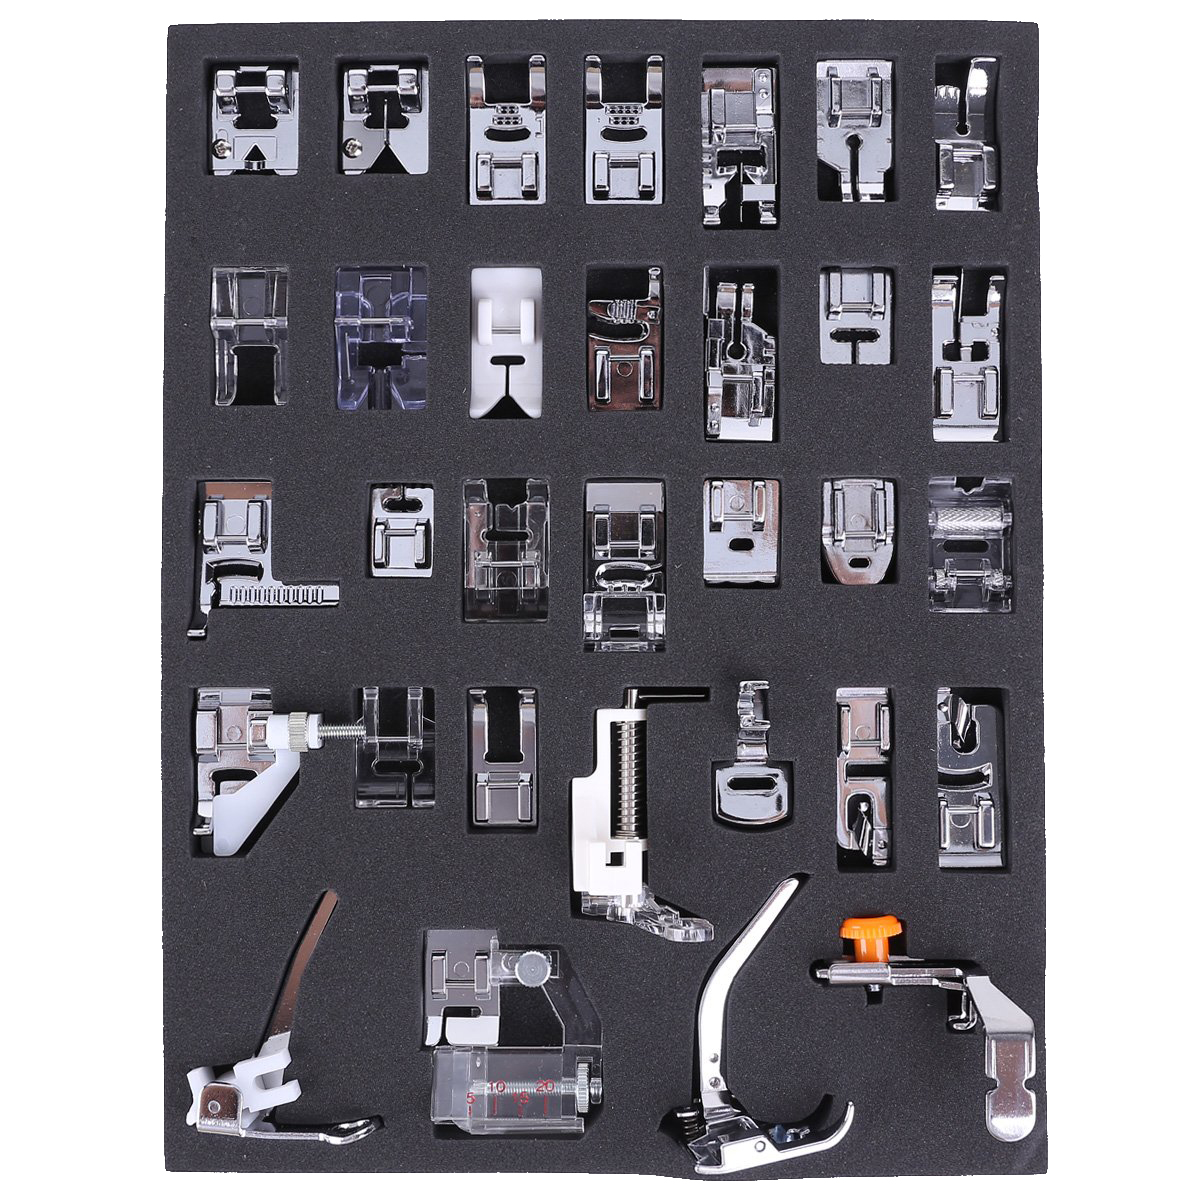 32pcs pieds de biche multifonctionnel pour machine a coudre y3 ebay. Black Bedroom Furniture Sets. Home Design Ideas